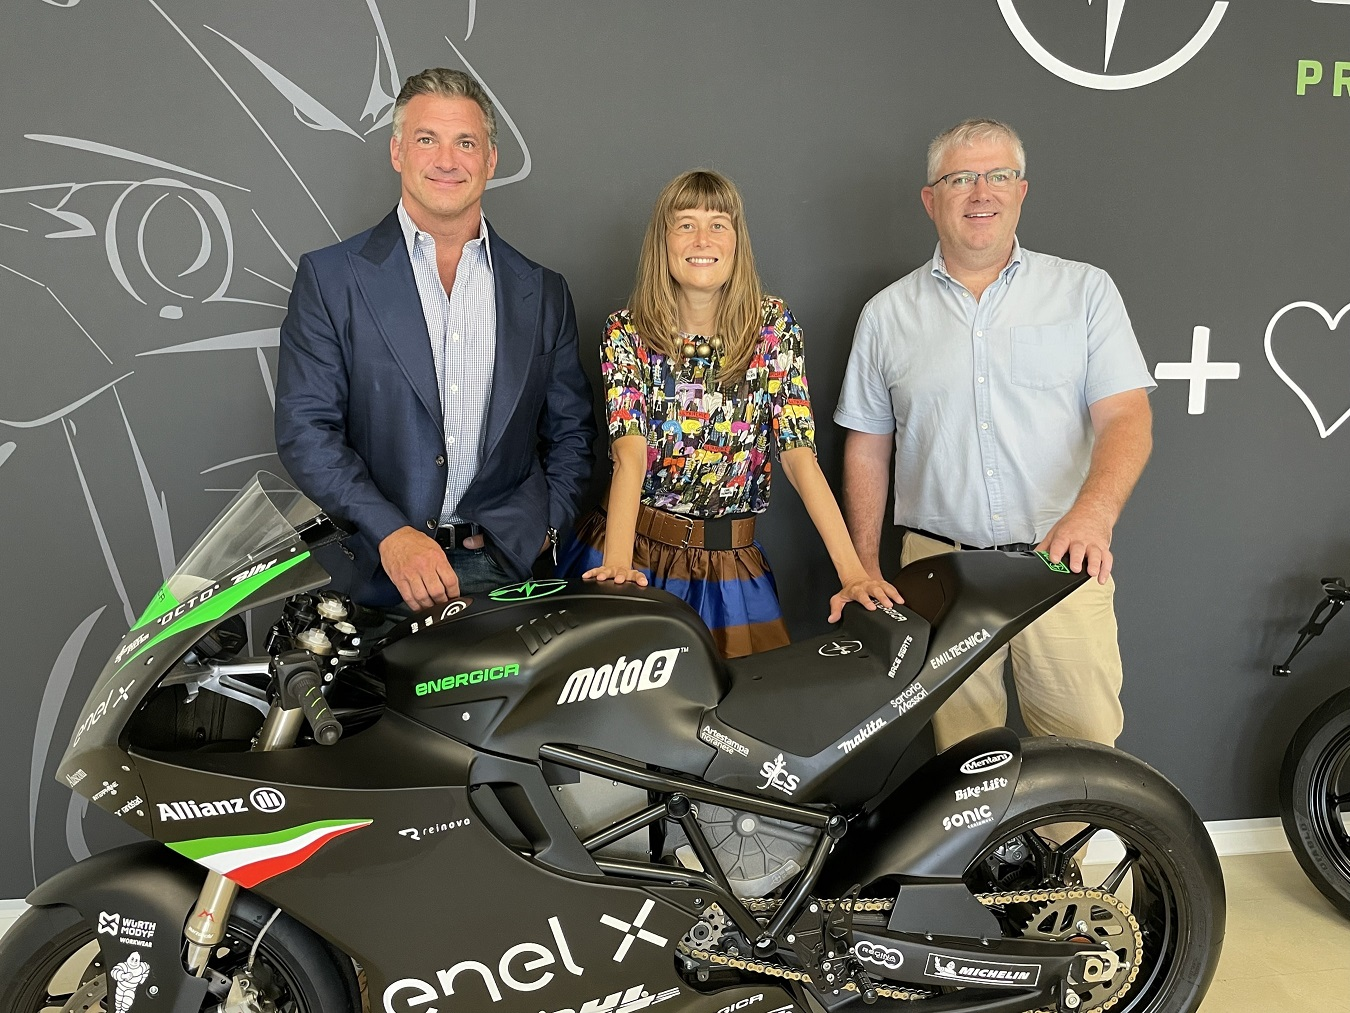 Ideanomics Increase Stake in Energica, Fueling Growth of the Company's Dealer Network in U.S.